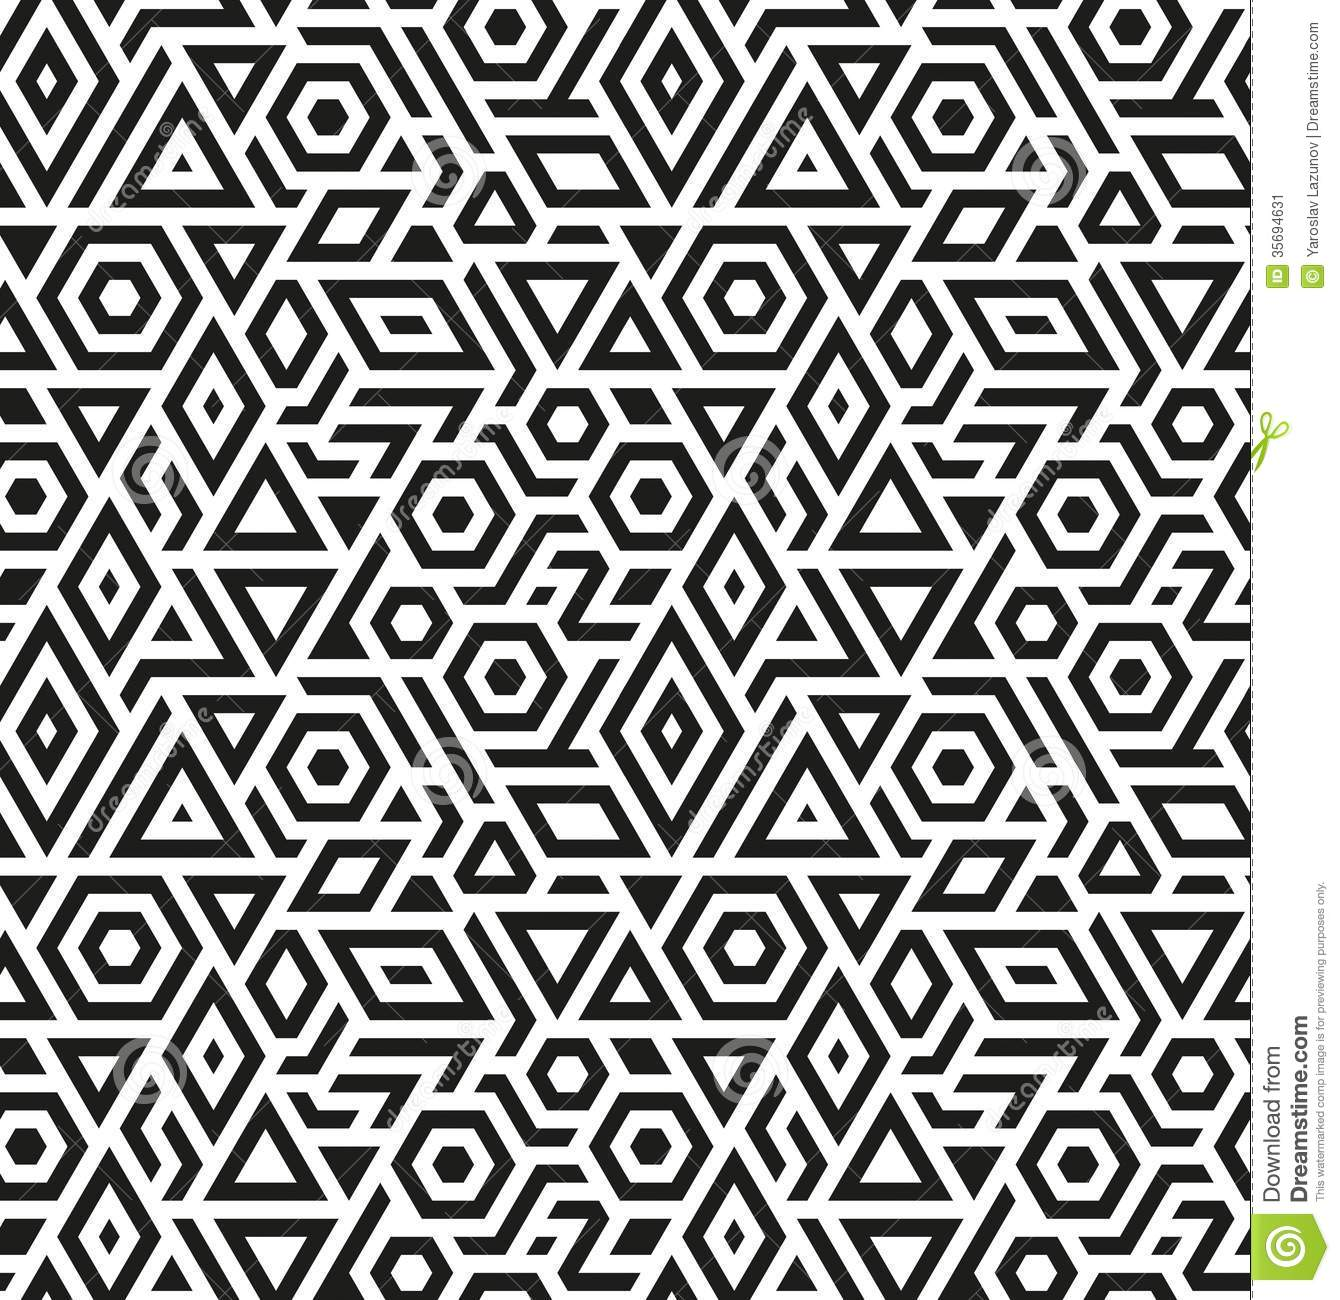 Seamless Geometric Vector Pattern Background Stock Image - Image ...